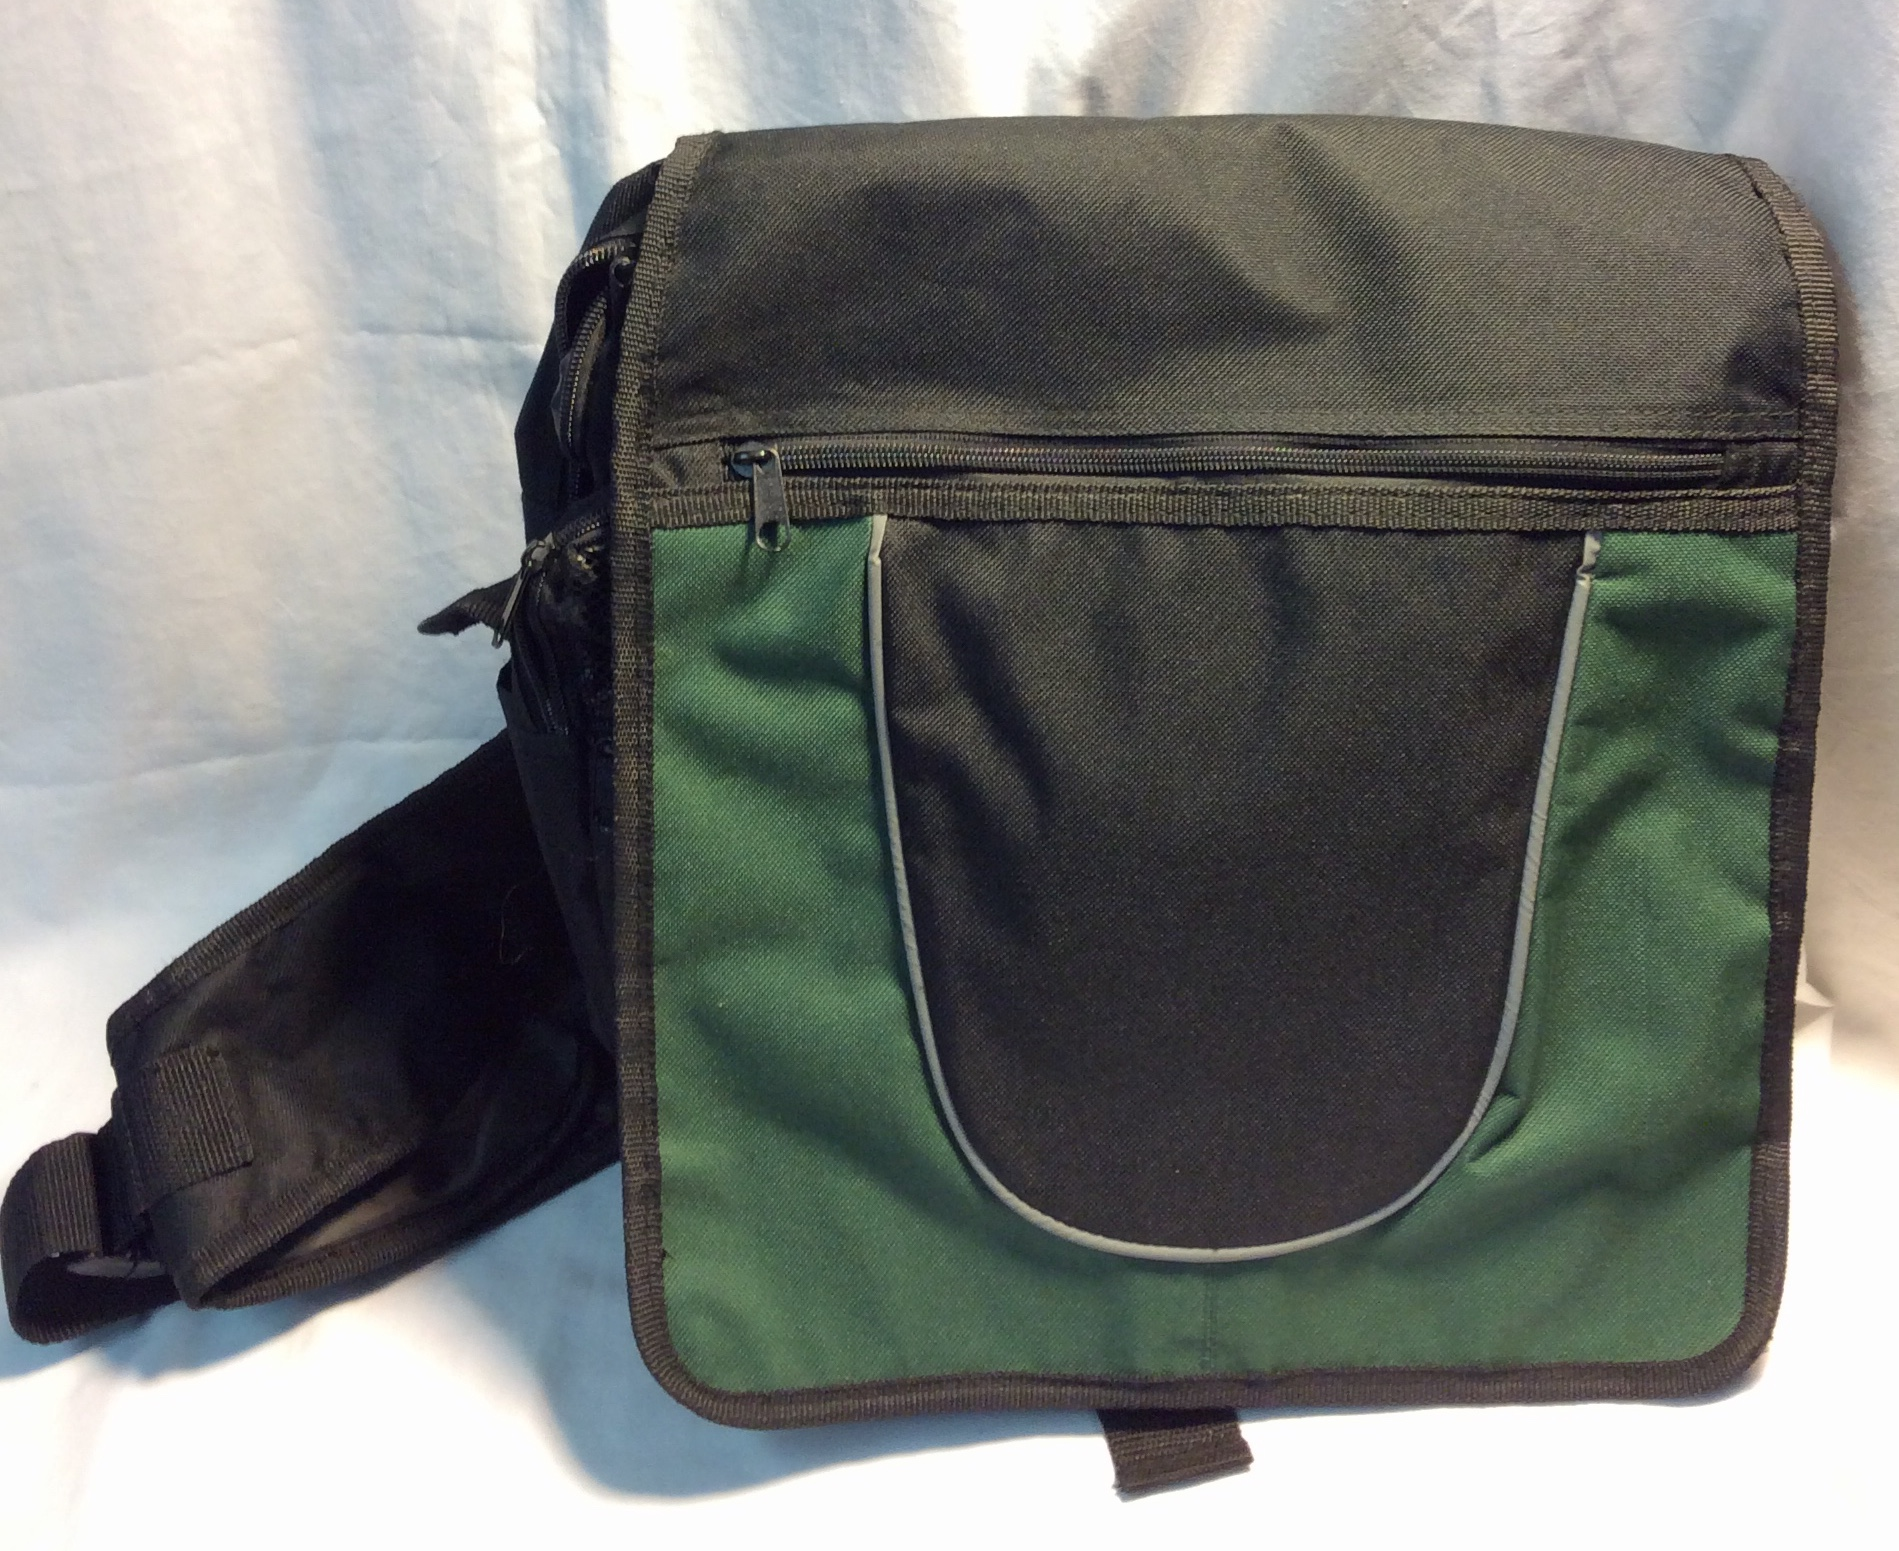 Black side bag with green front flap